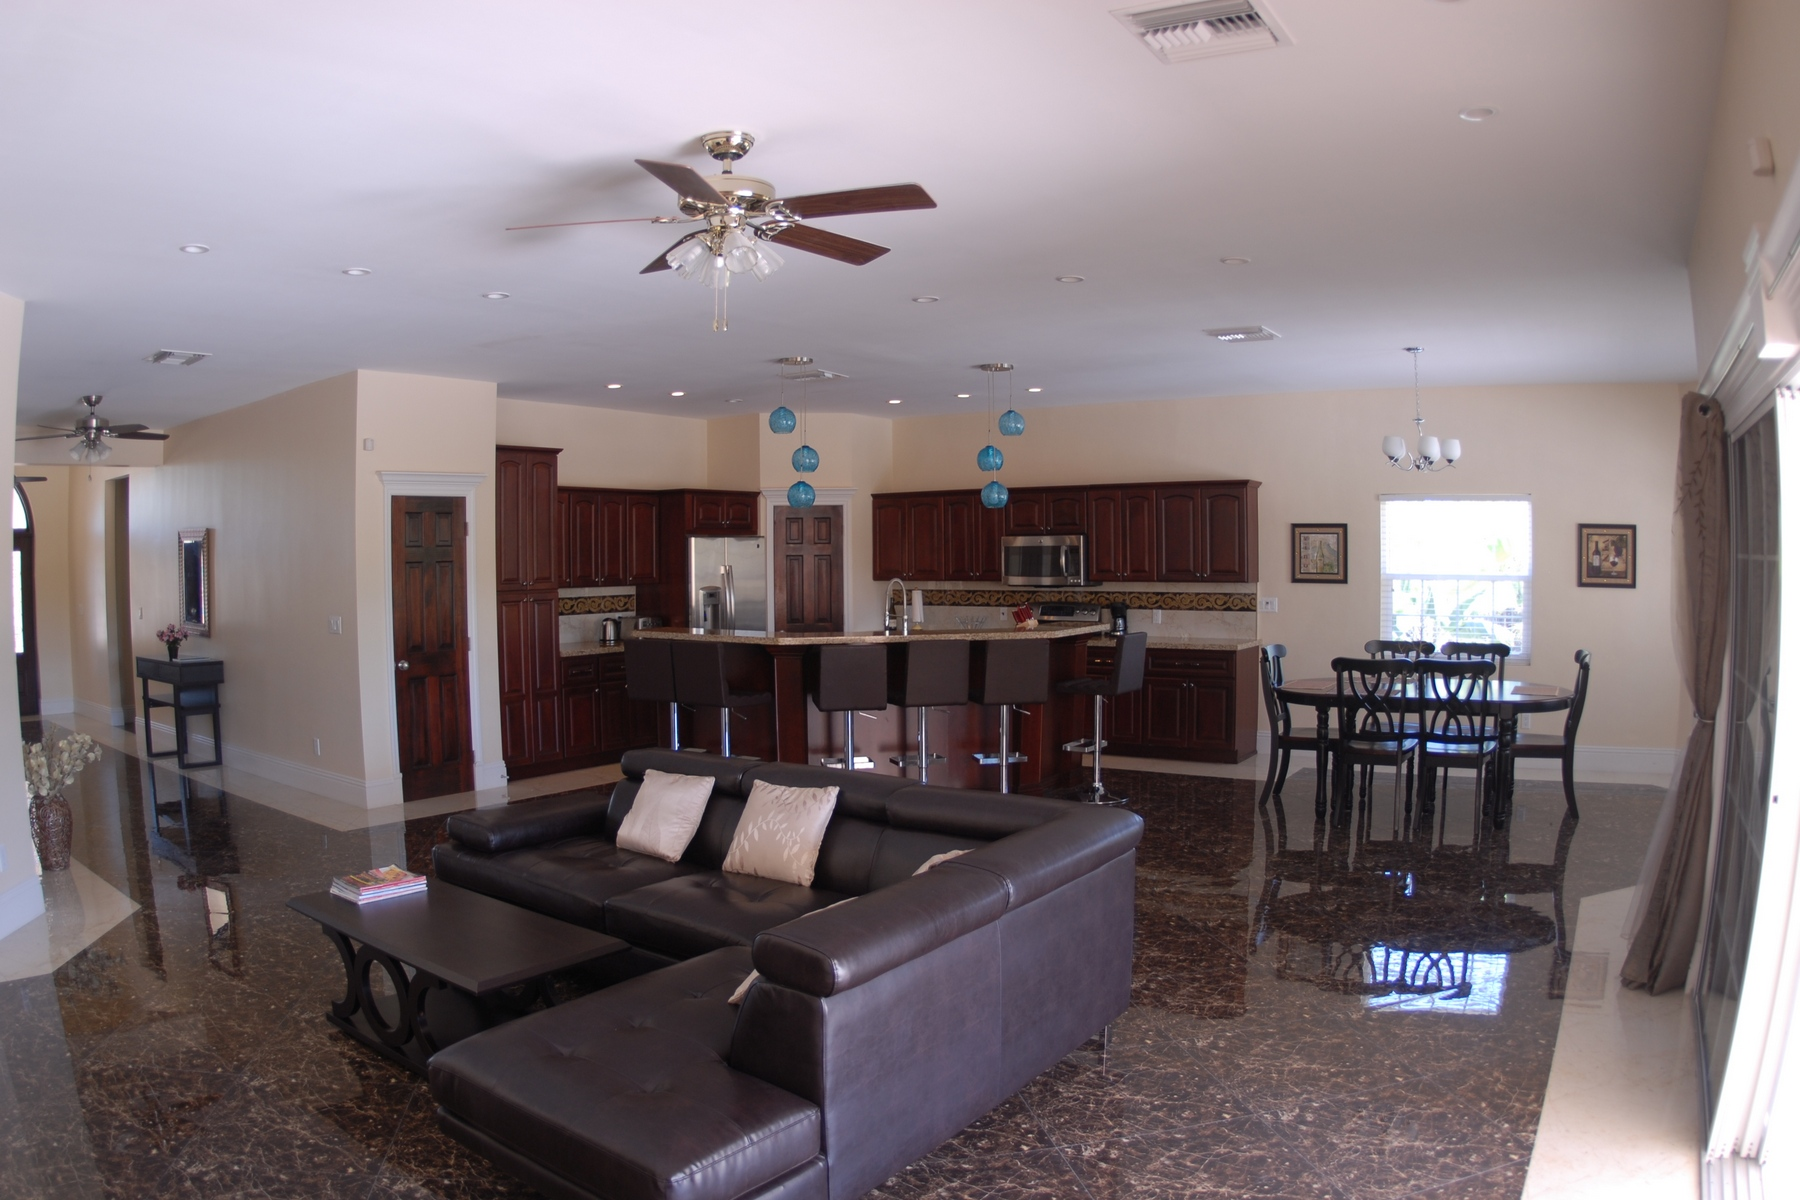 Single Family Home for Sale at Forbes Road The Bight, Providenciales, Turks And Caicos Islands